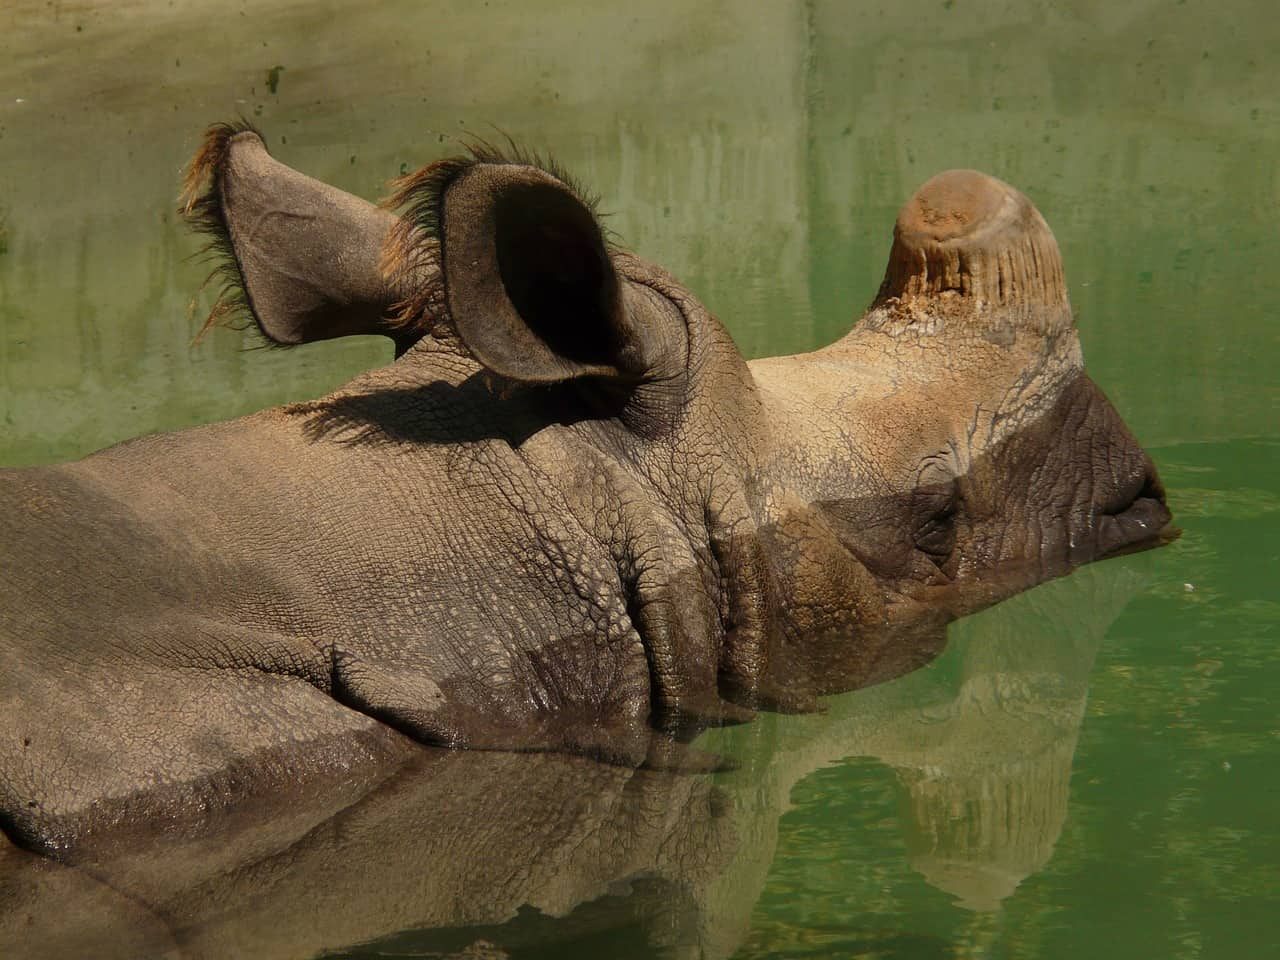 Indian rhinoceros is an animal of India